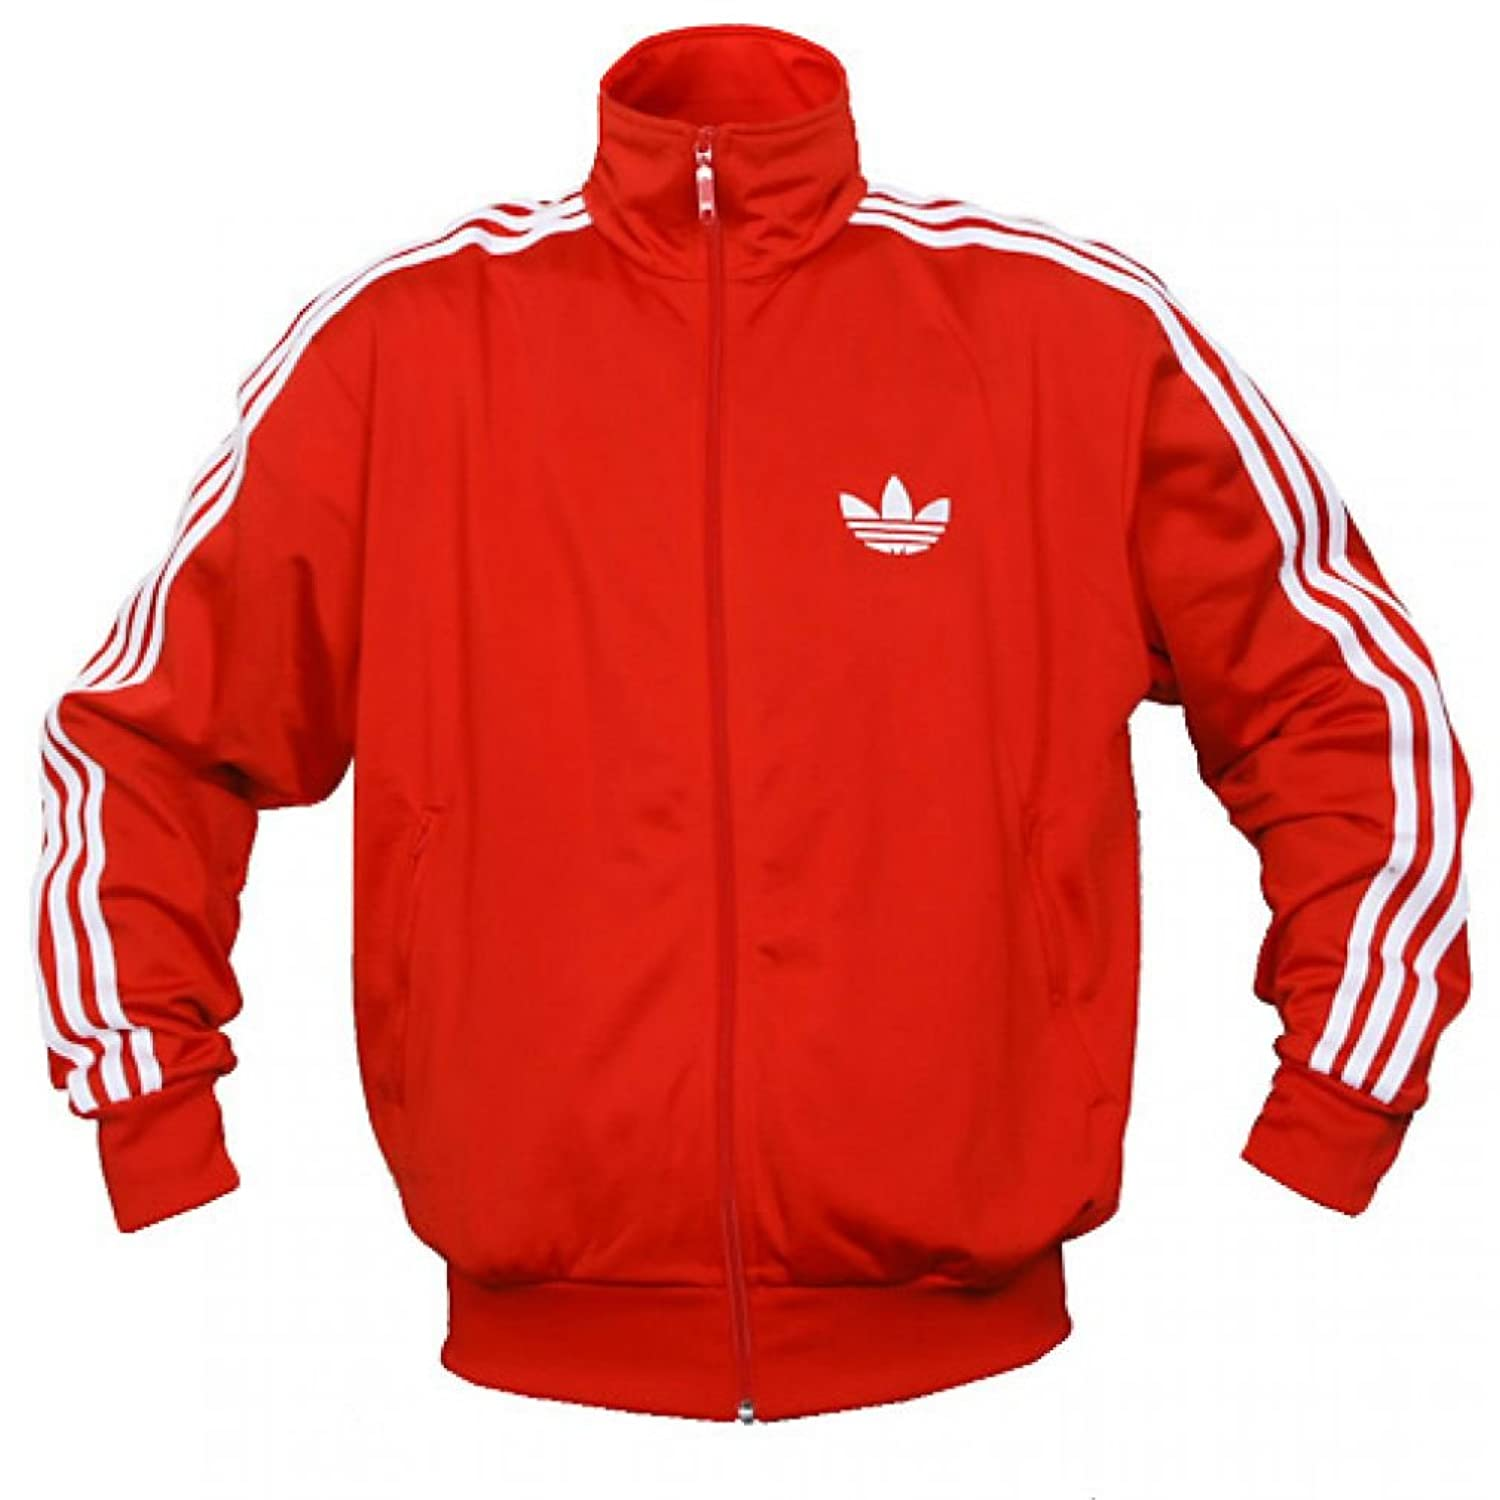 firebird track jacket adidas images. Black Bedroom Furniture Sets. Home Design Ideas